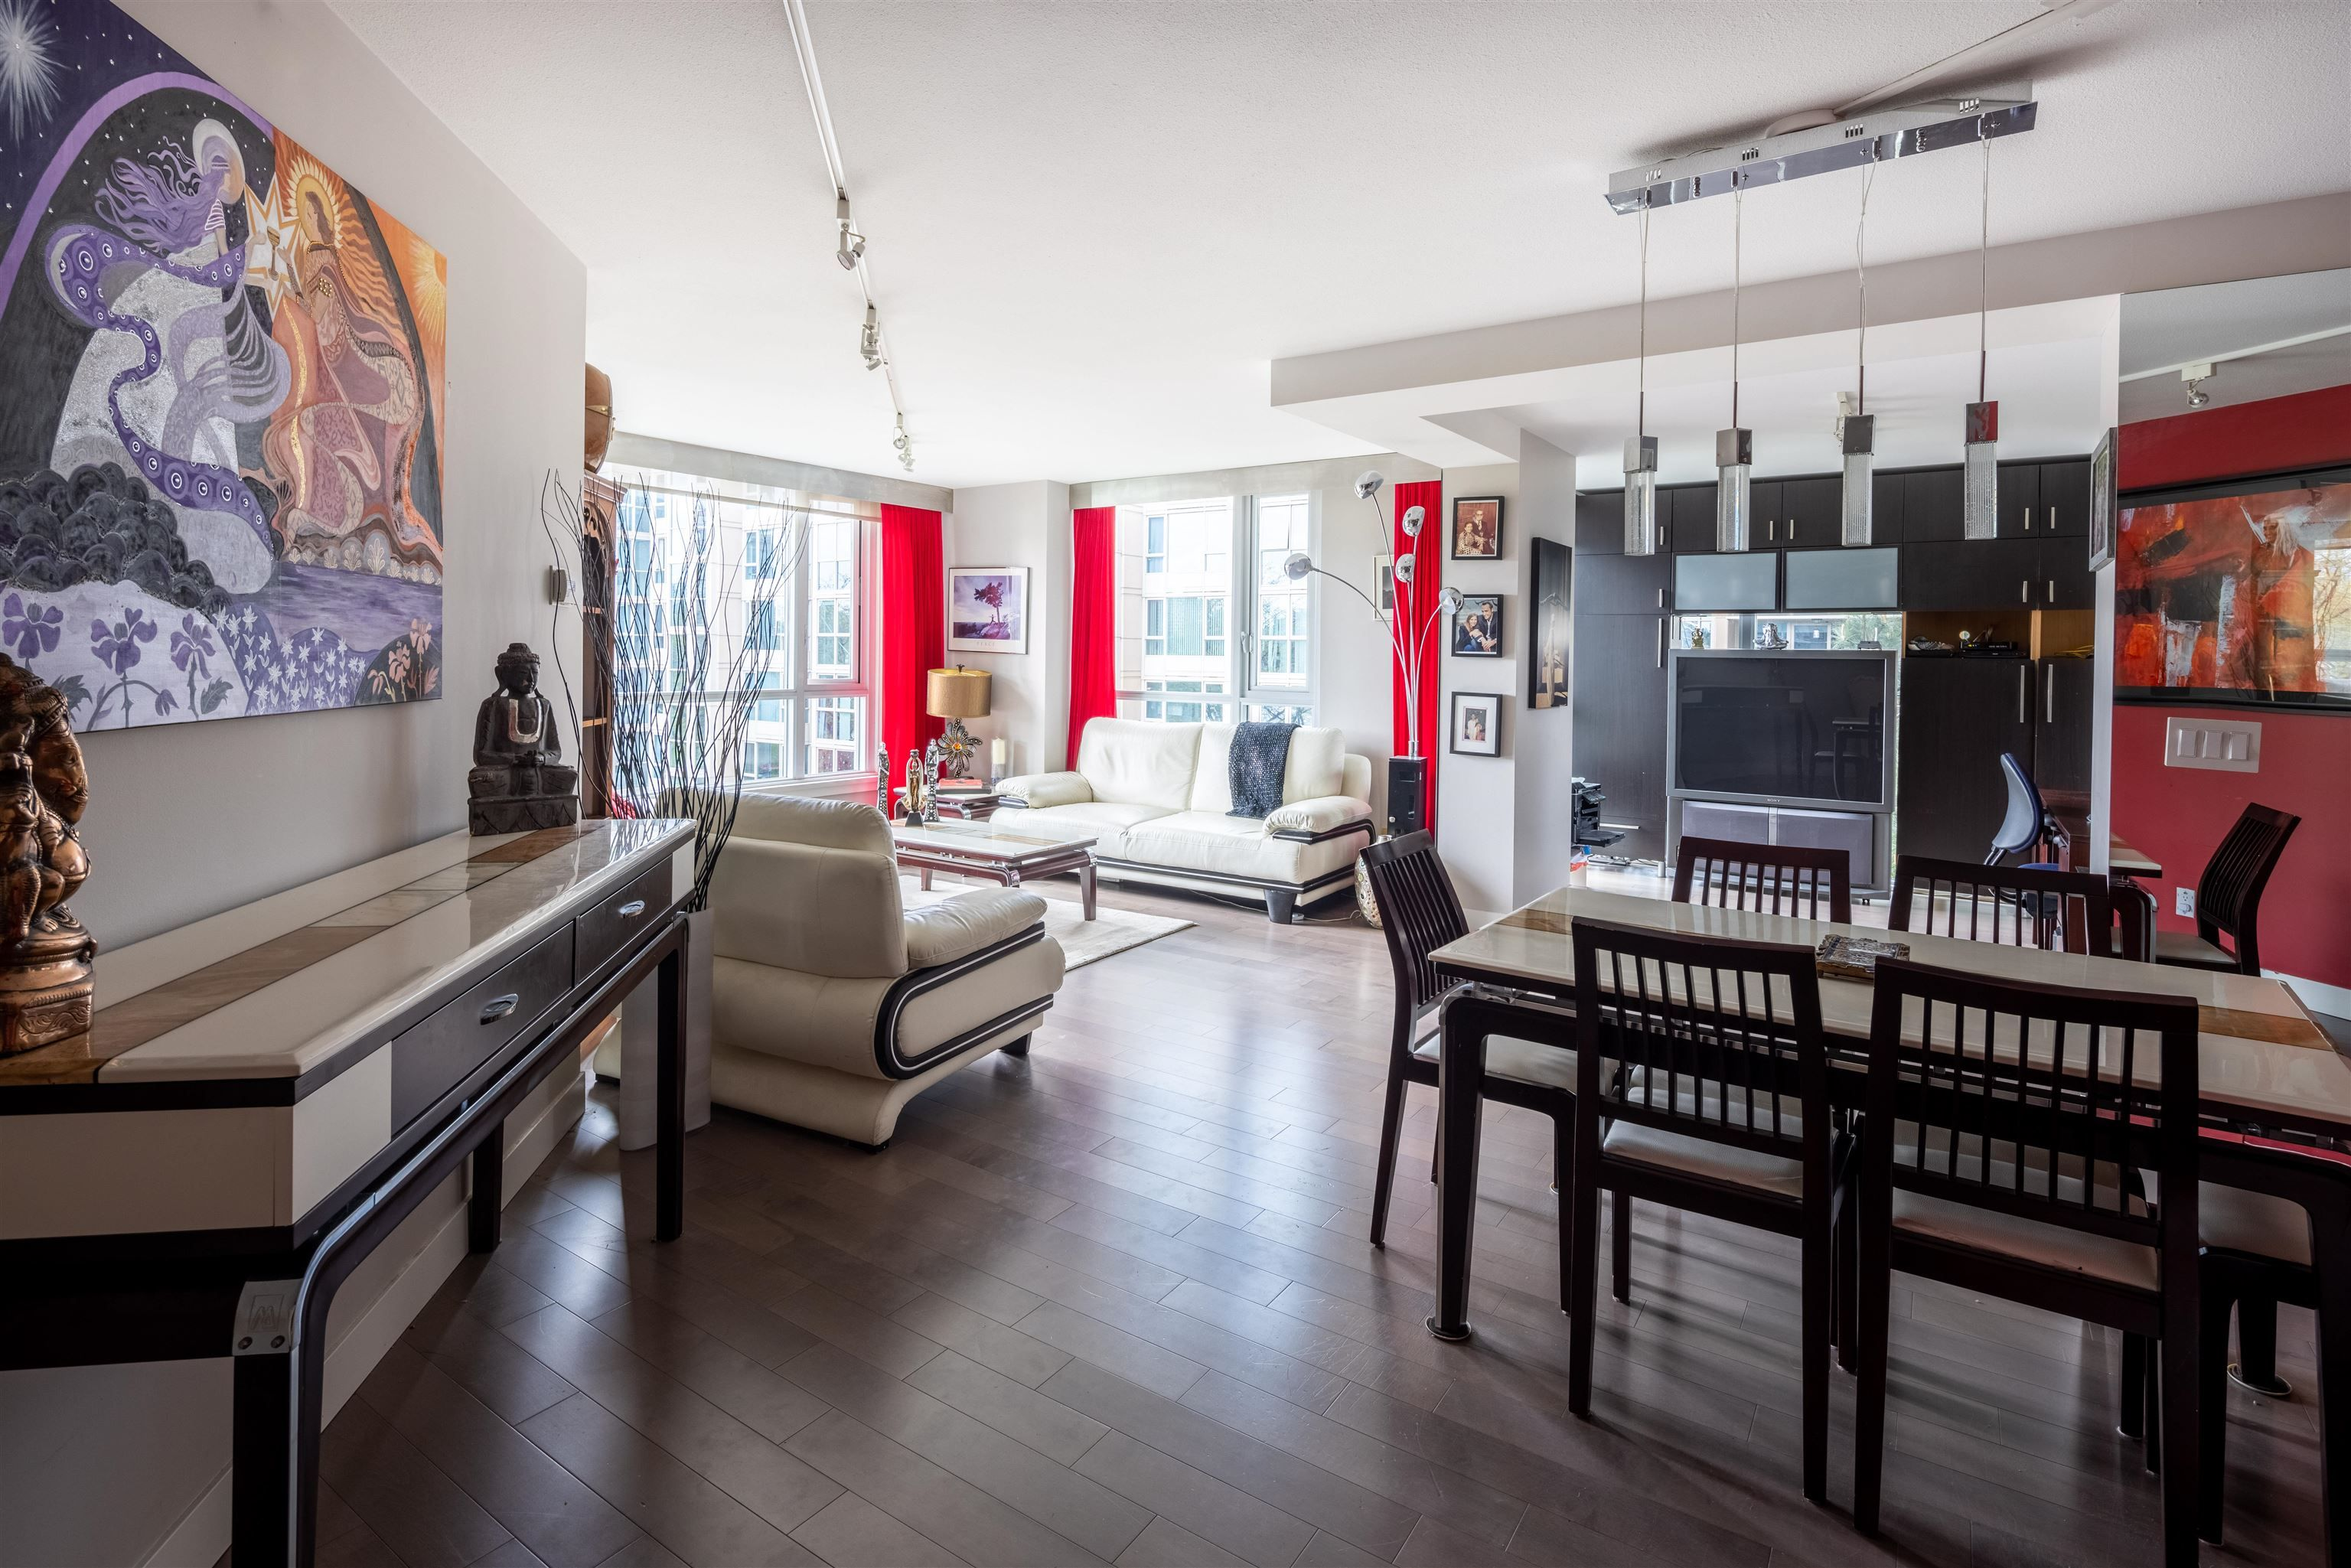 """Main Photo: 601 388 DRAKE Street in Vancouver: Yaletown Condo for sale in """"GOVERNORS TOWER"""" (Vancouver West)  : MLS®# R2616318"""